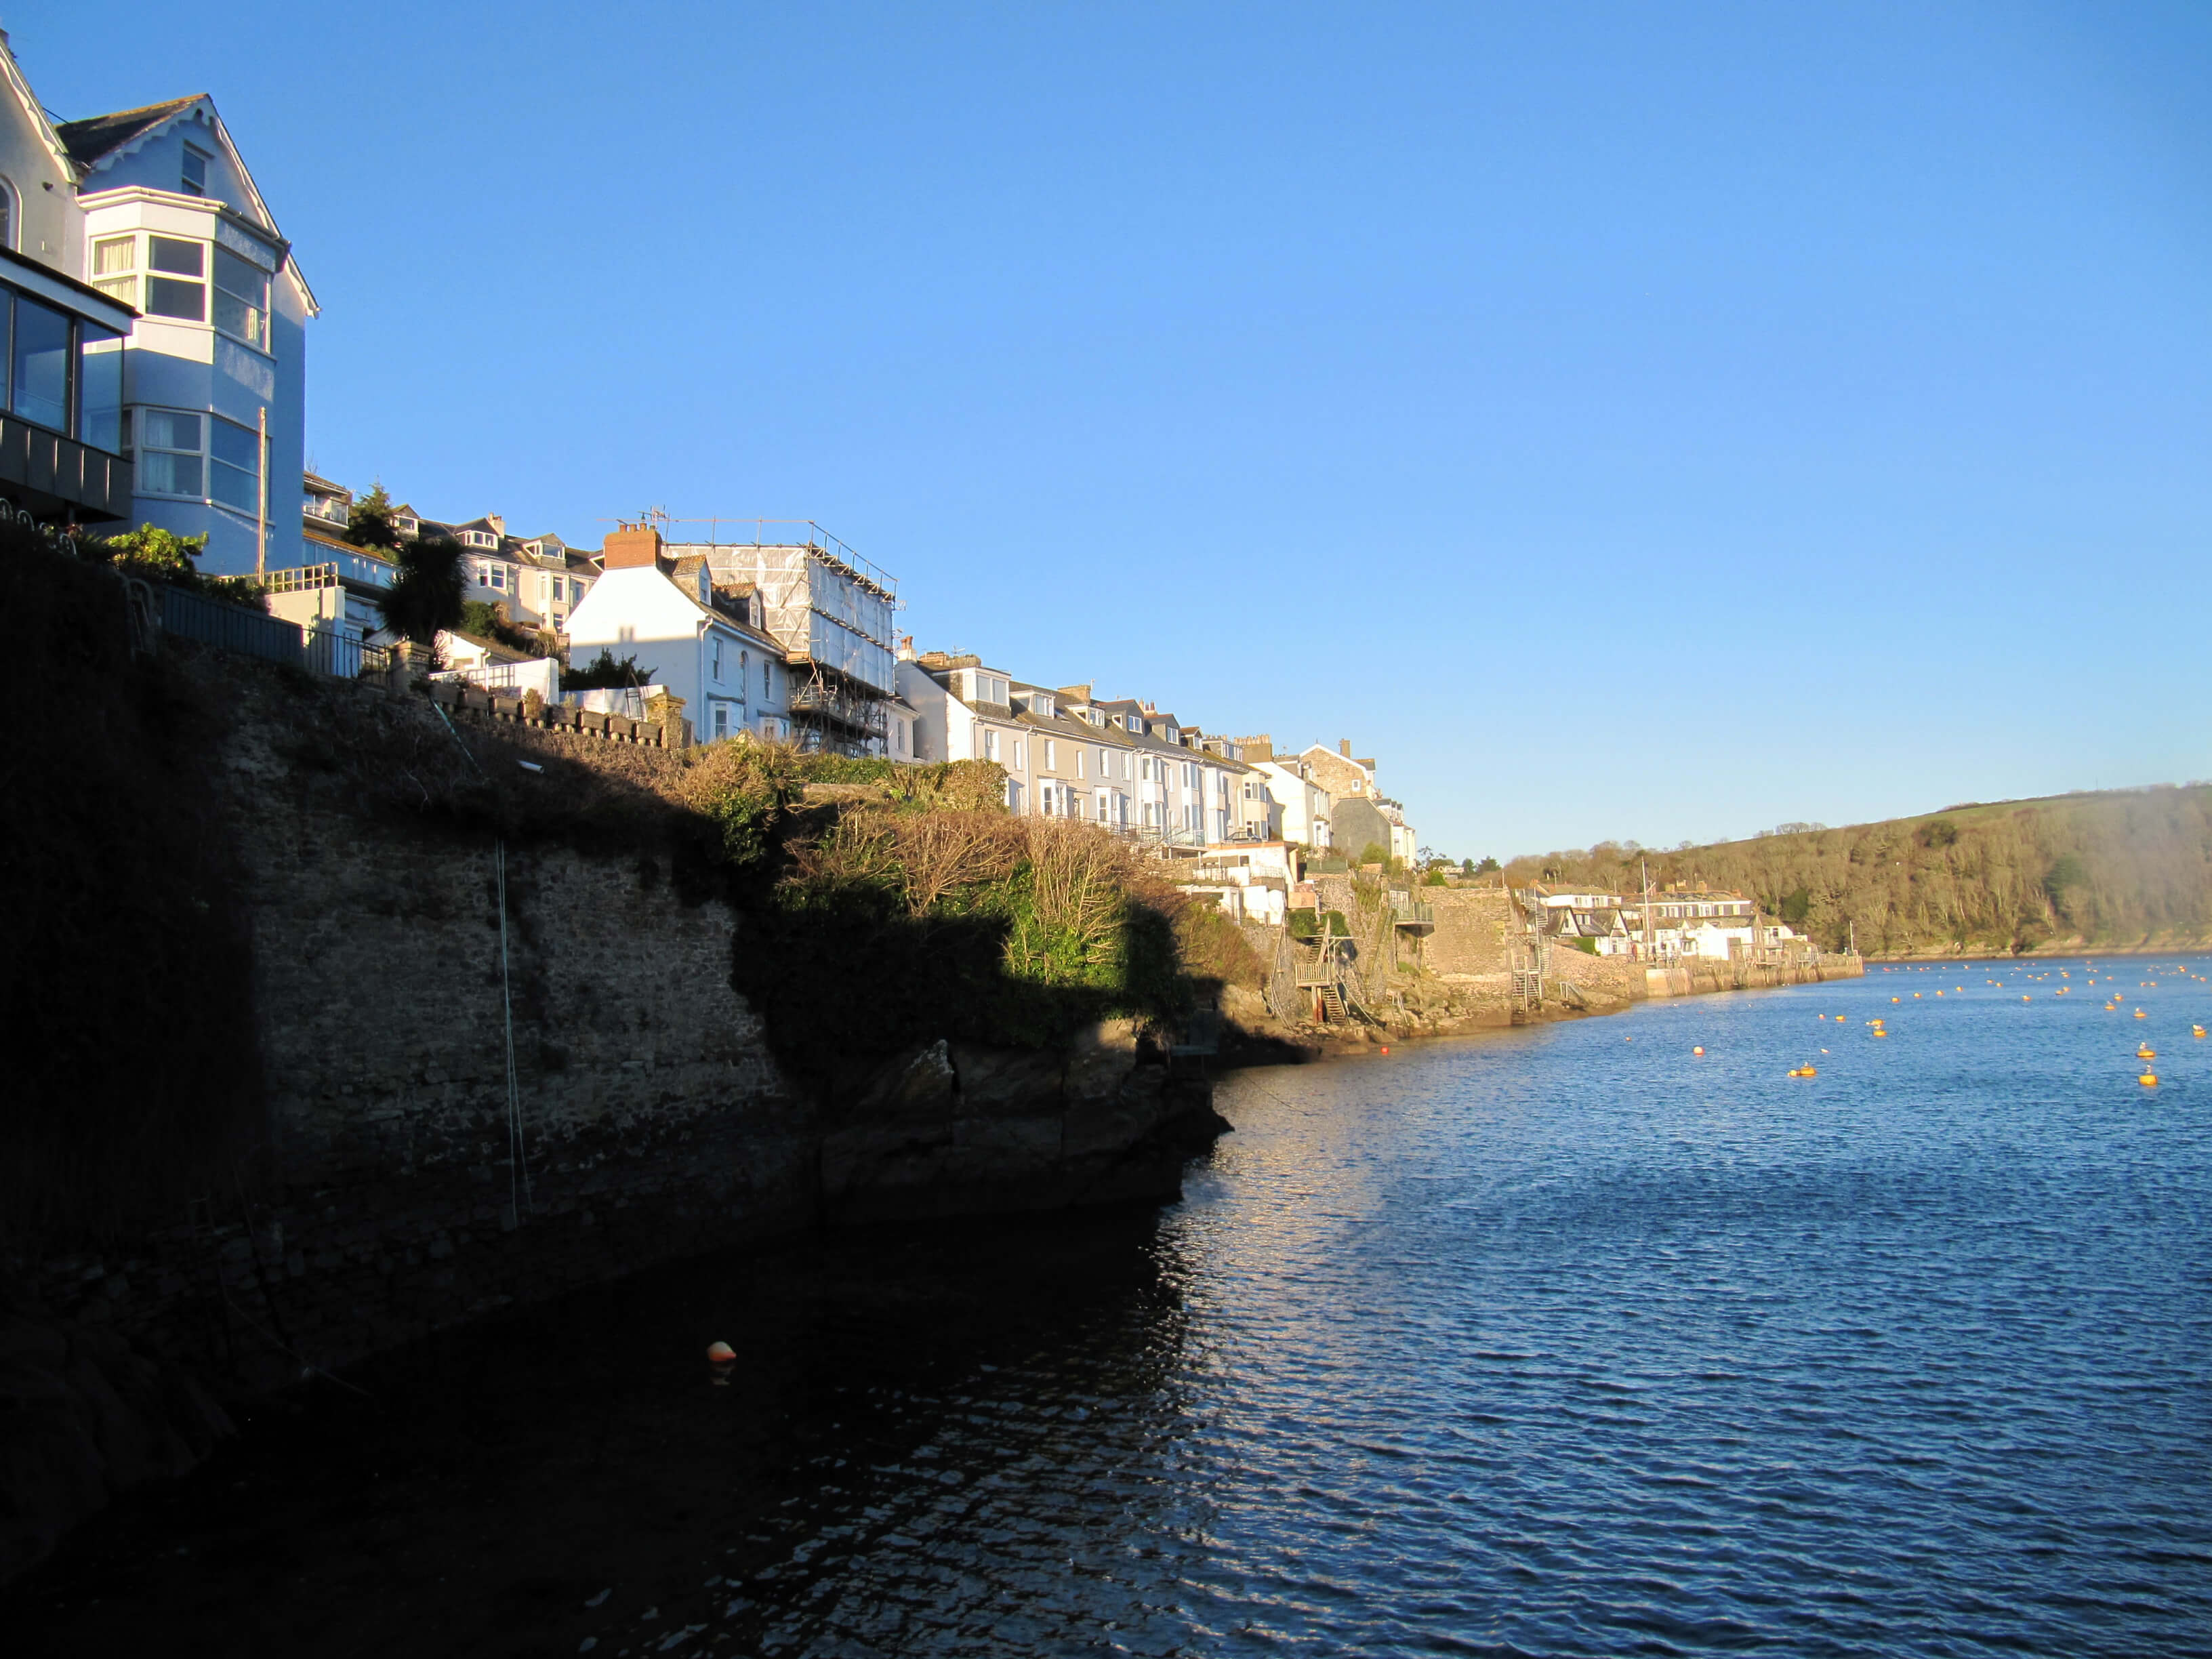 a group of homes towering above a bank by the bay on the Cornish Riviera